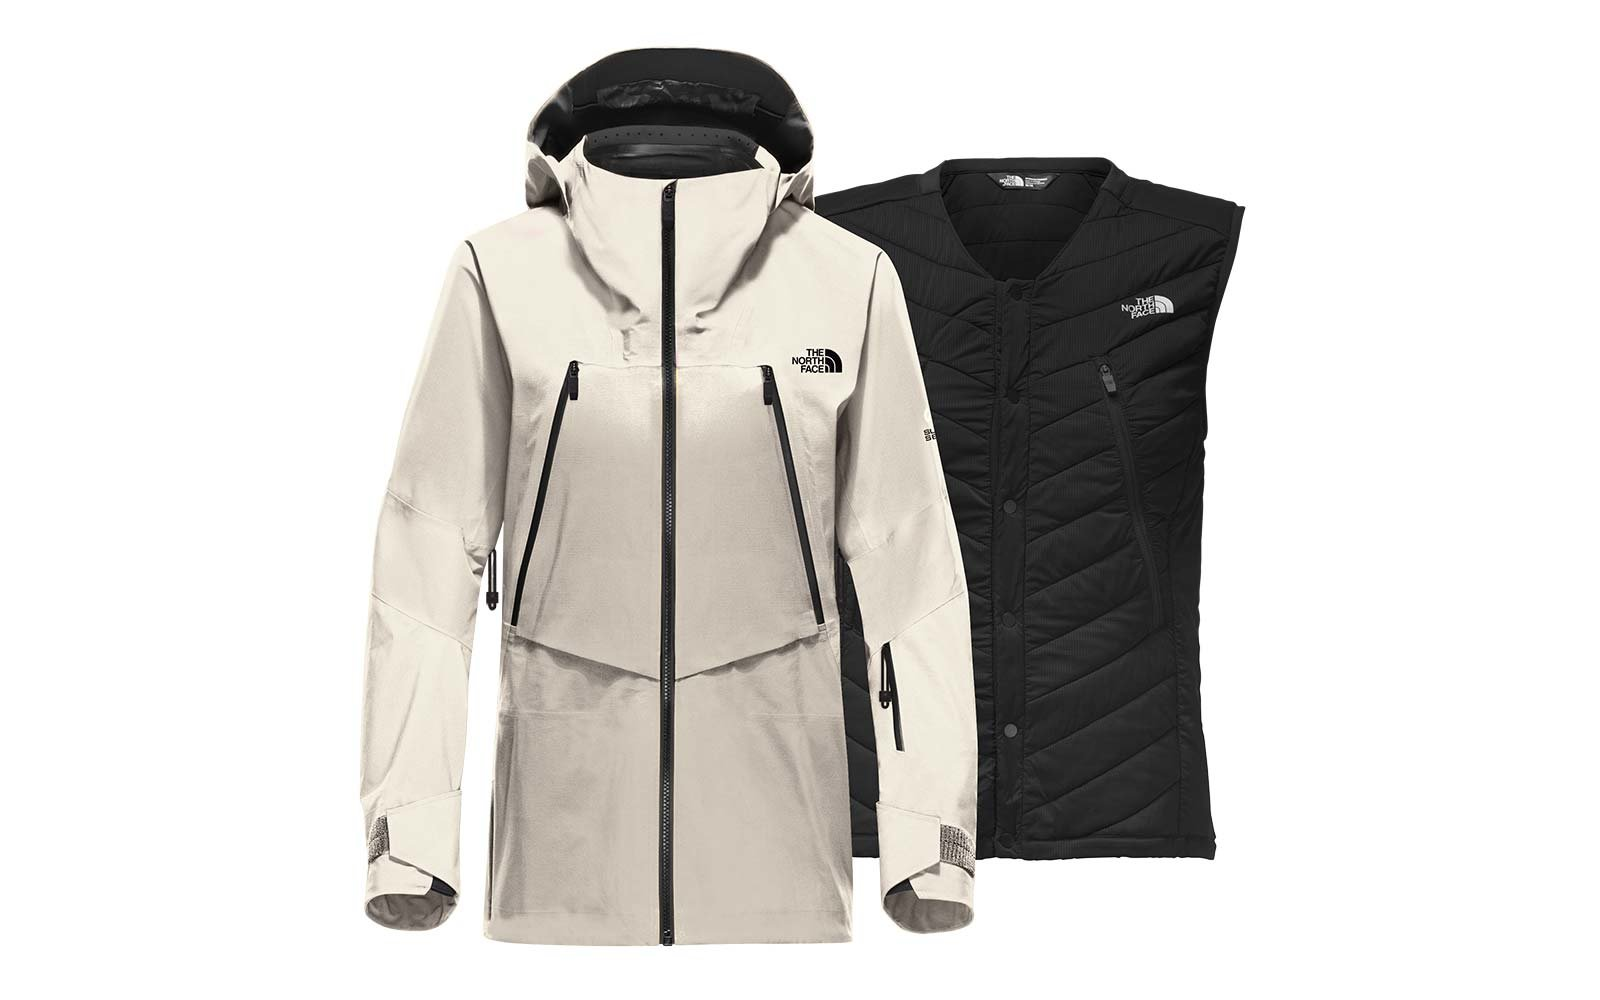 The North Face Purist Triclimate Jacket